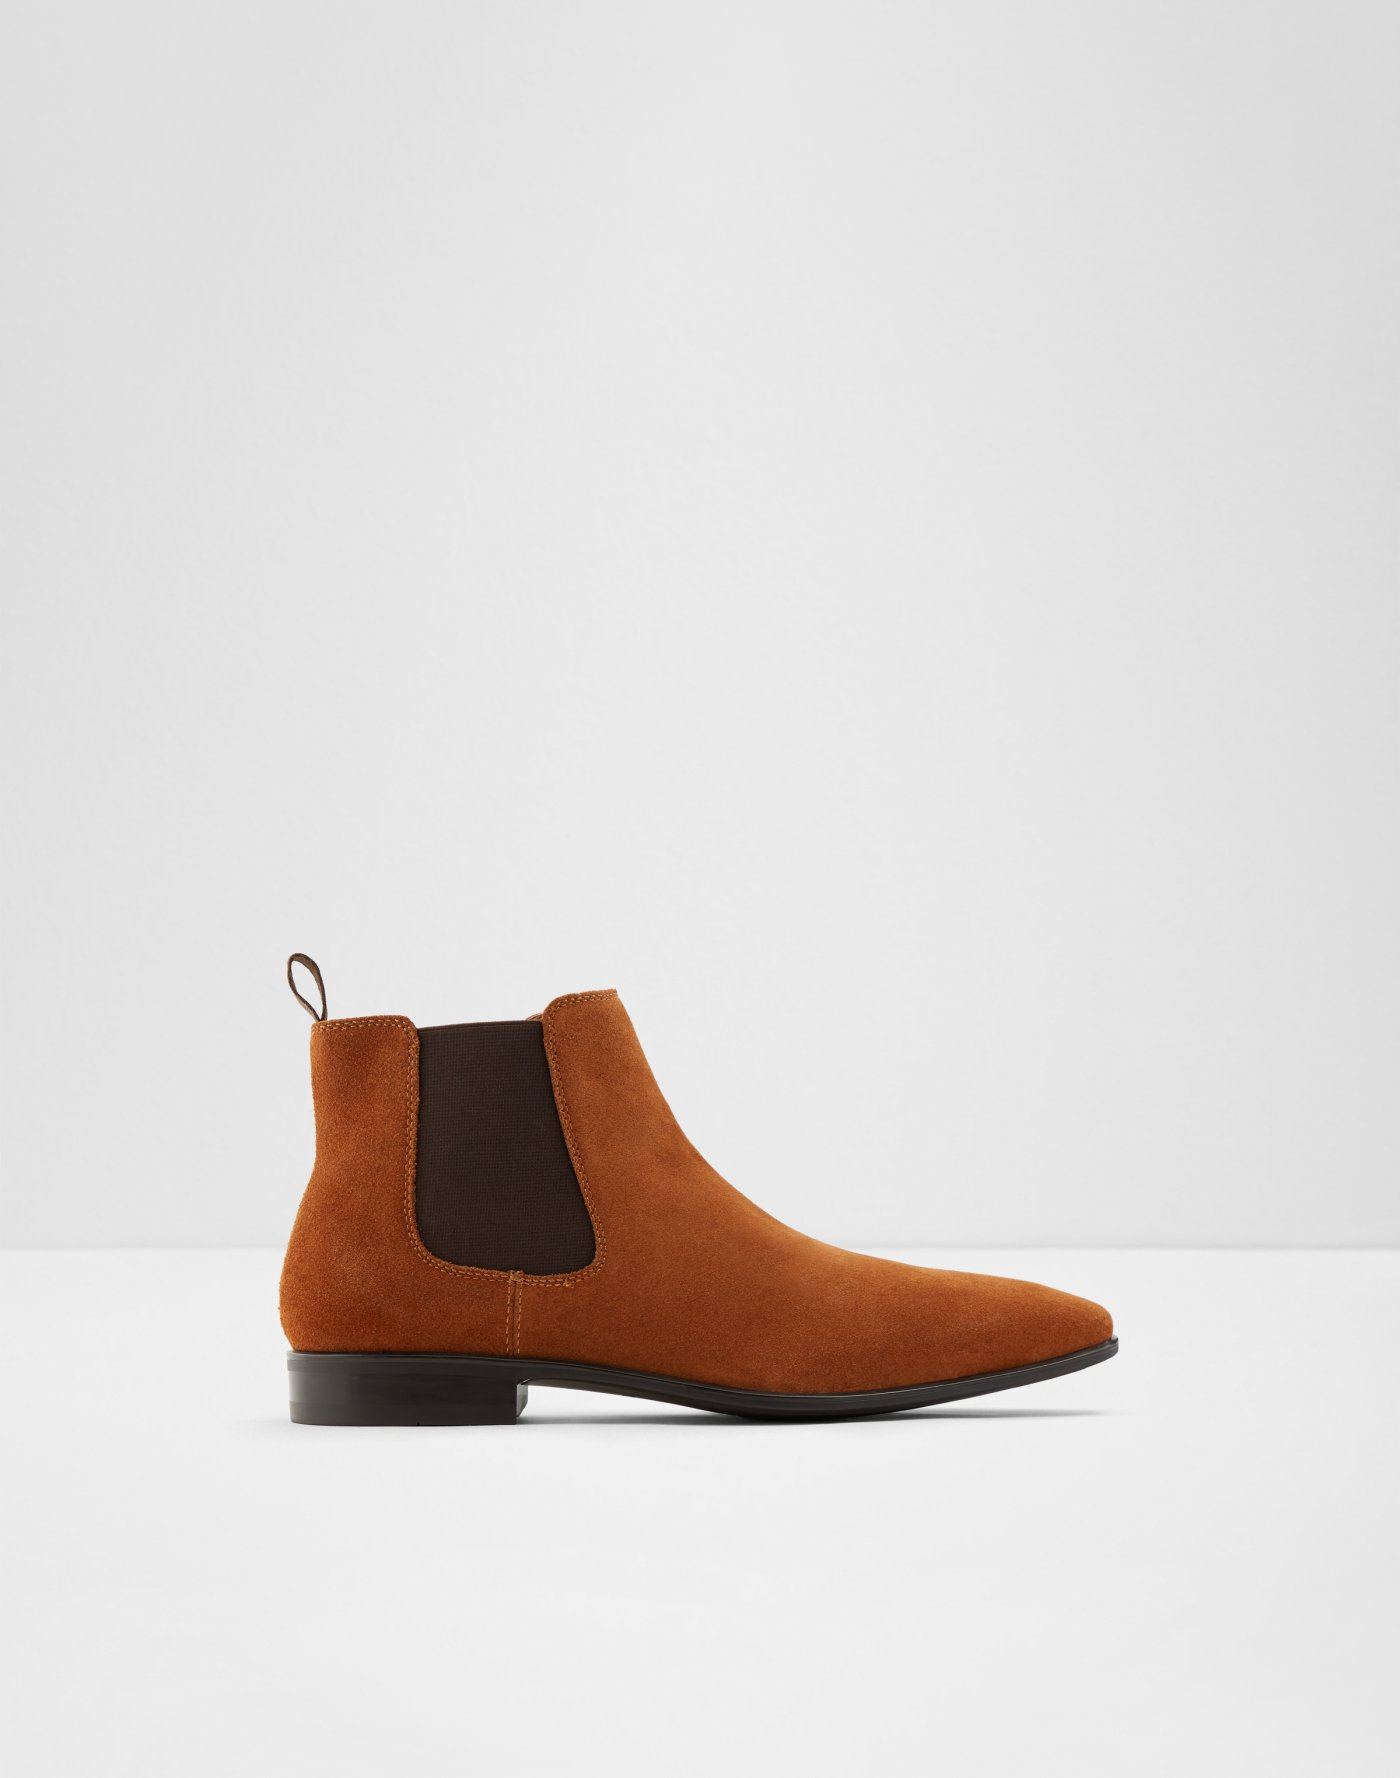 71d1ad76823 All Men's Sales | Shoes, Accessories And Wallets | ALDO US ...